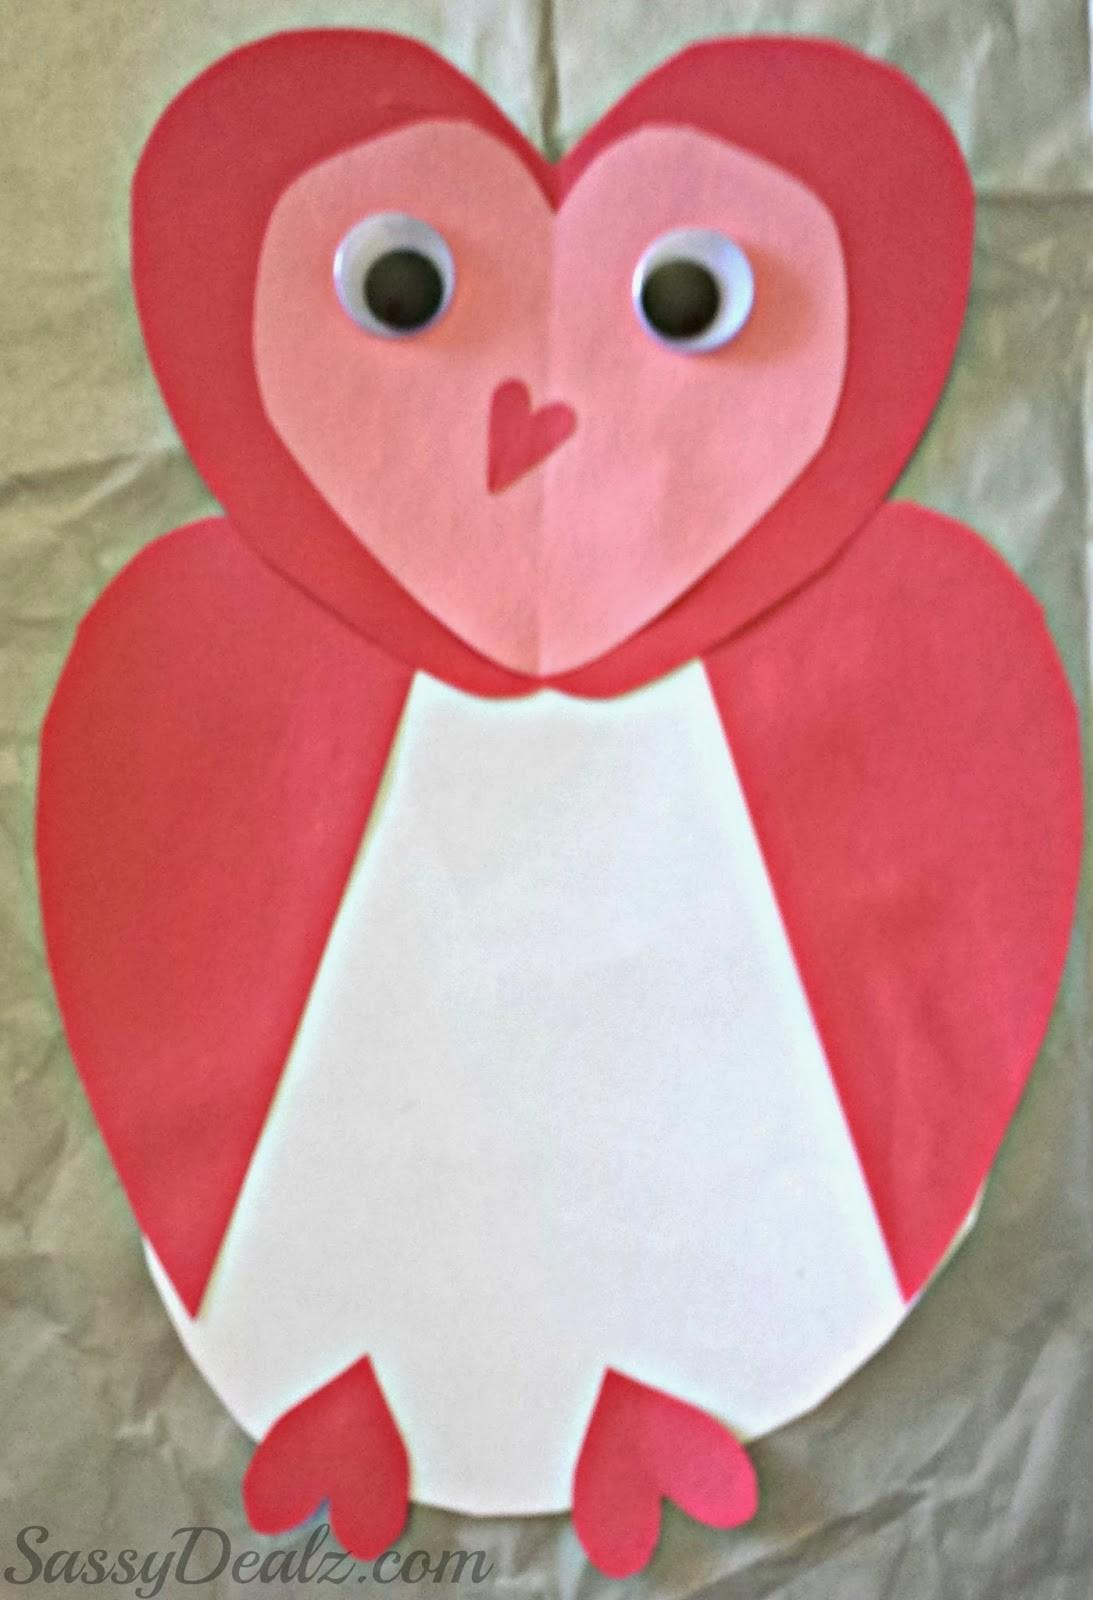 Owl Valentines Day Card Idea Kids Crafty Morning